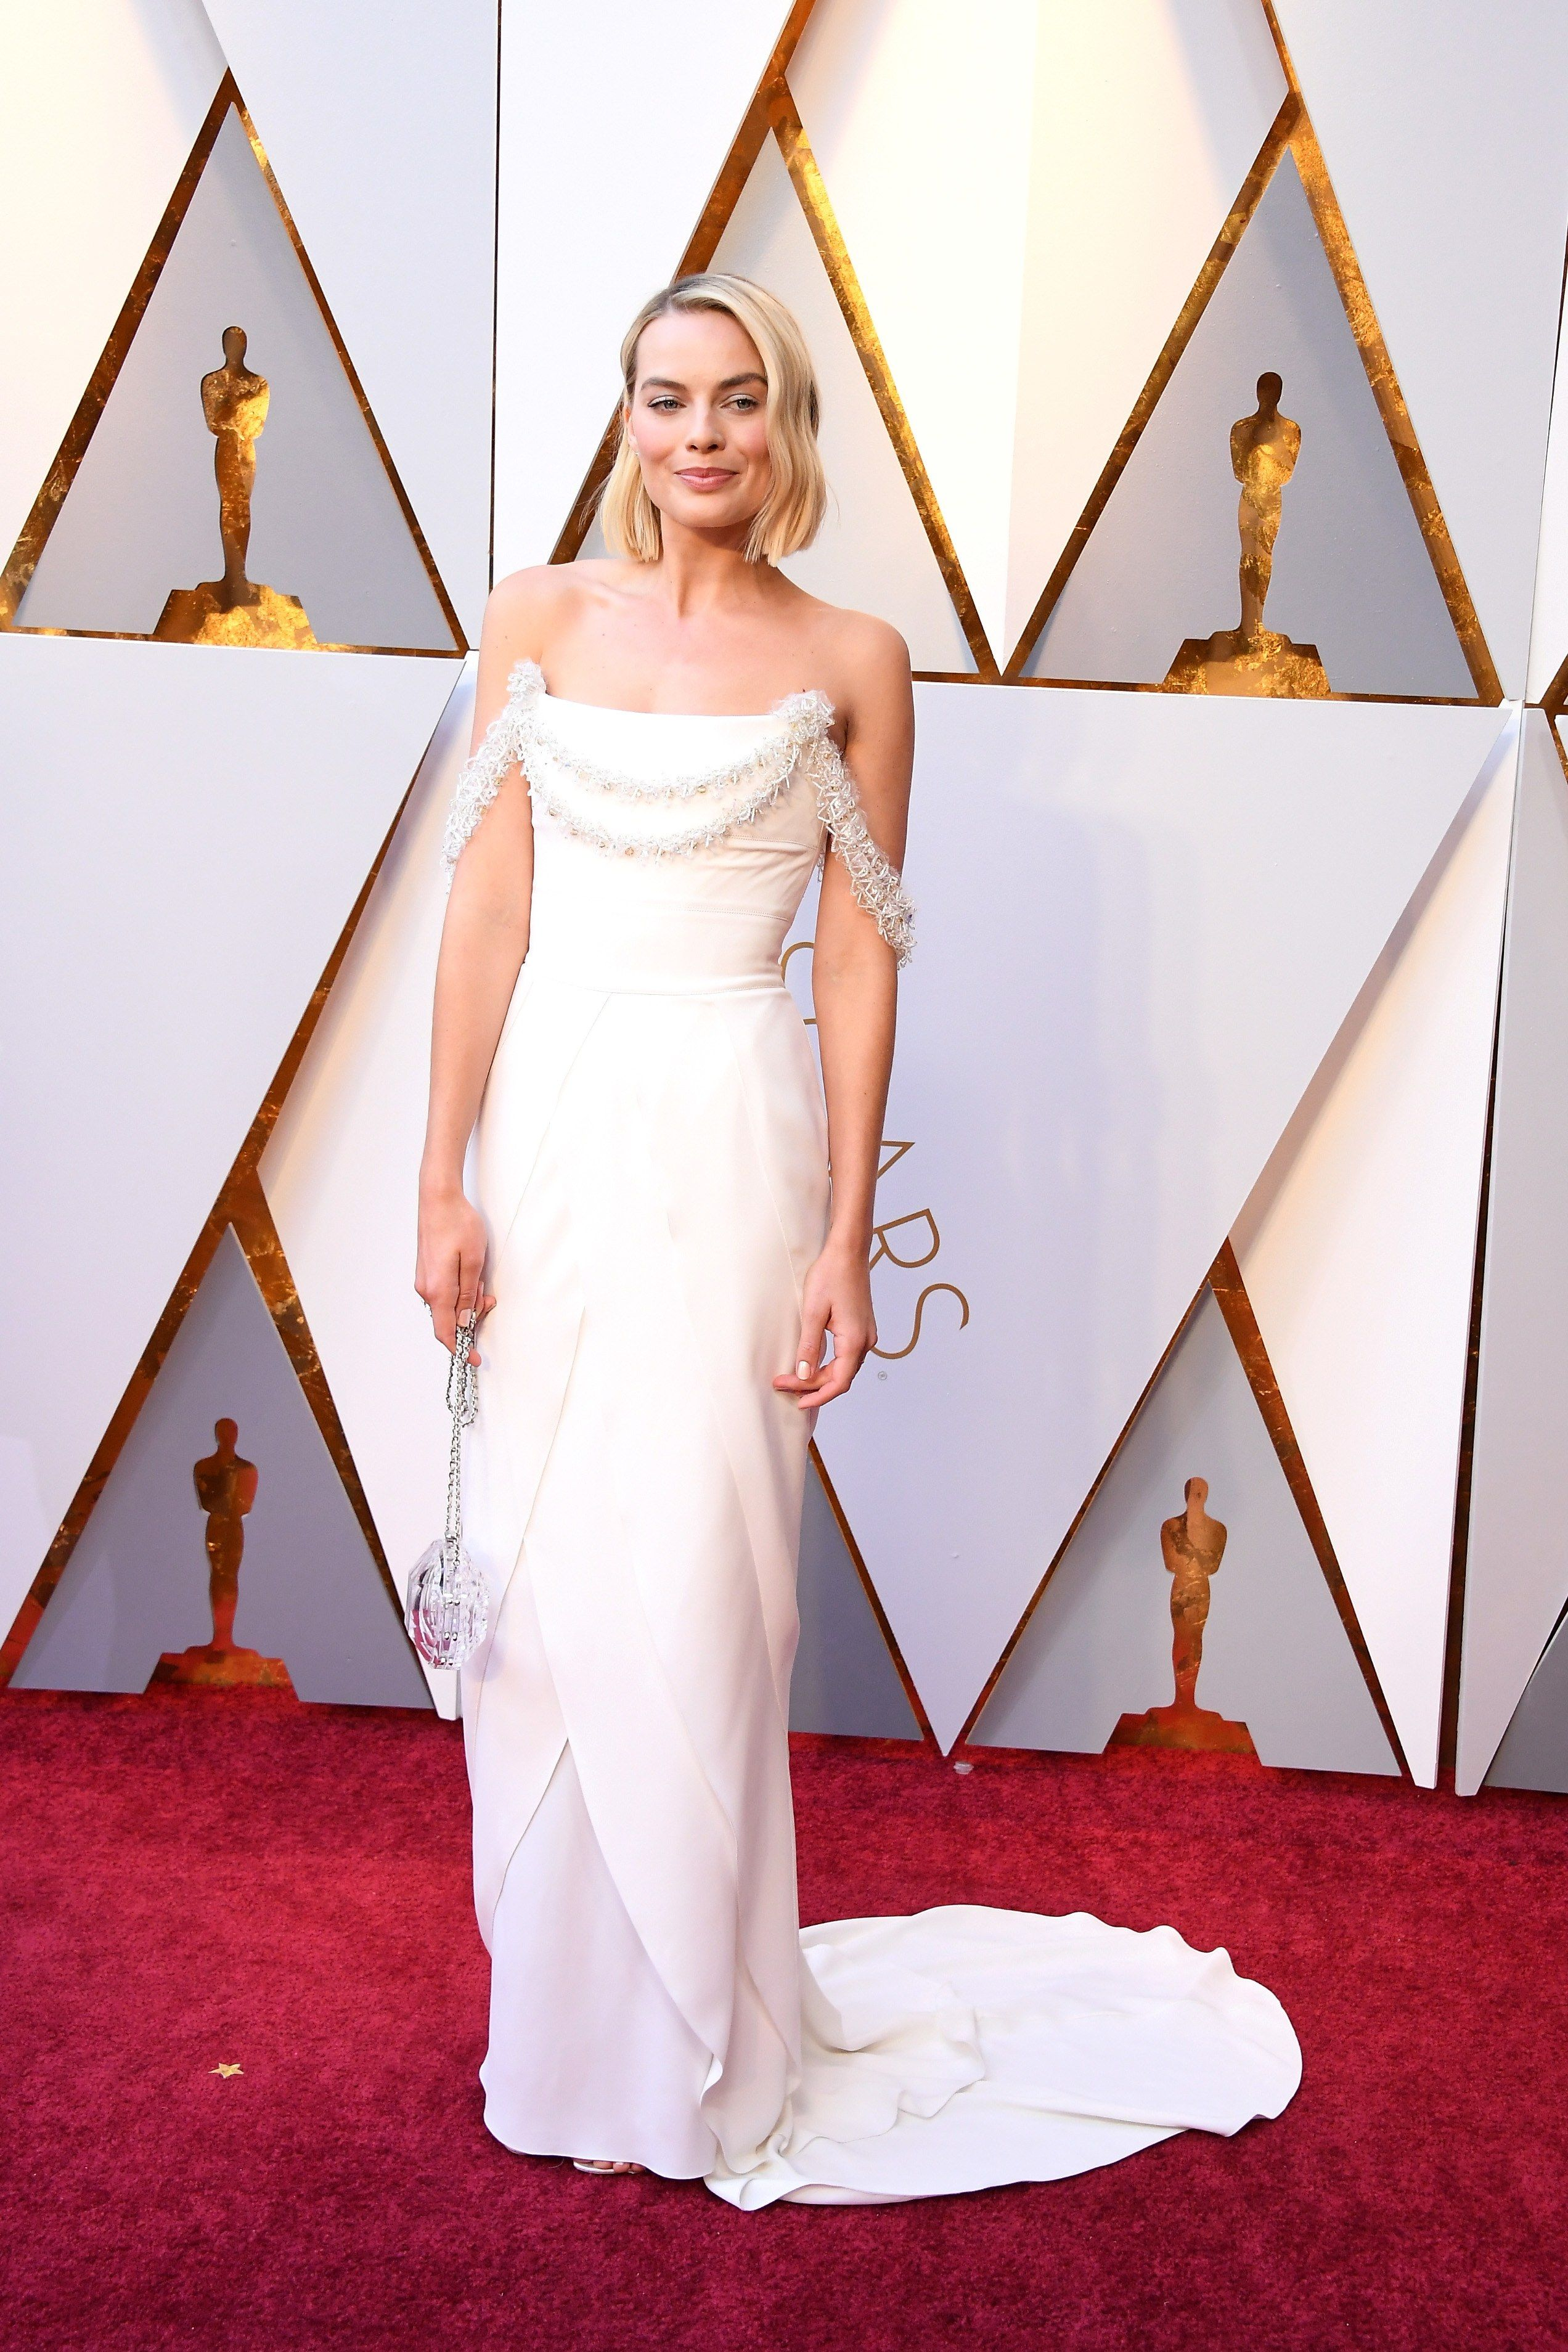 Oscars fashionulive from the red carpet in celebrities